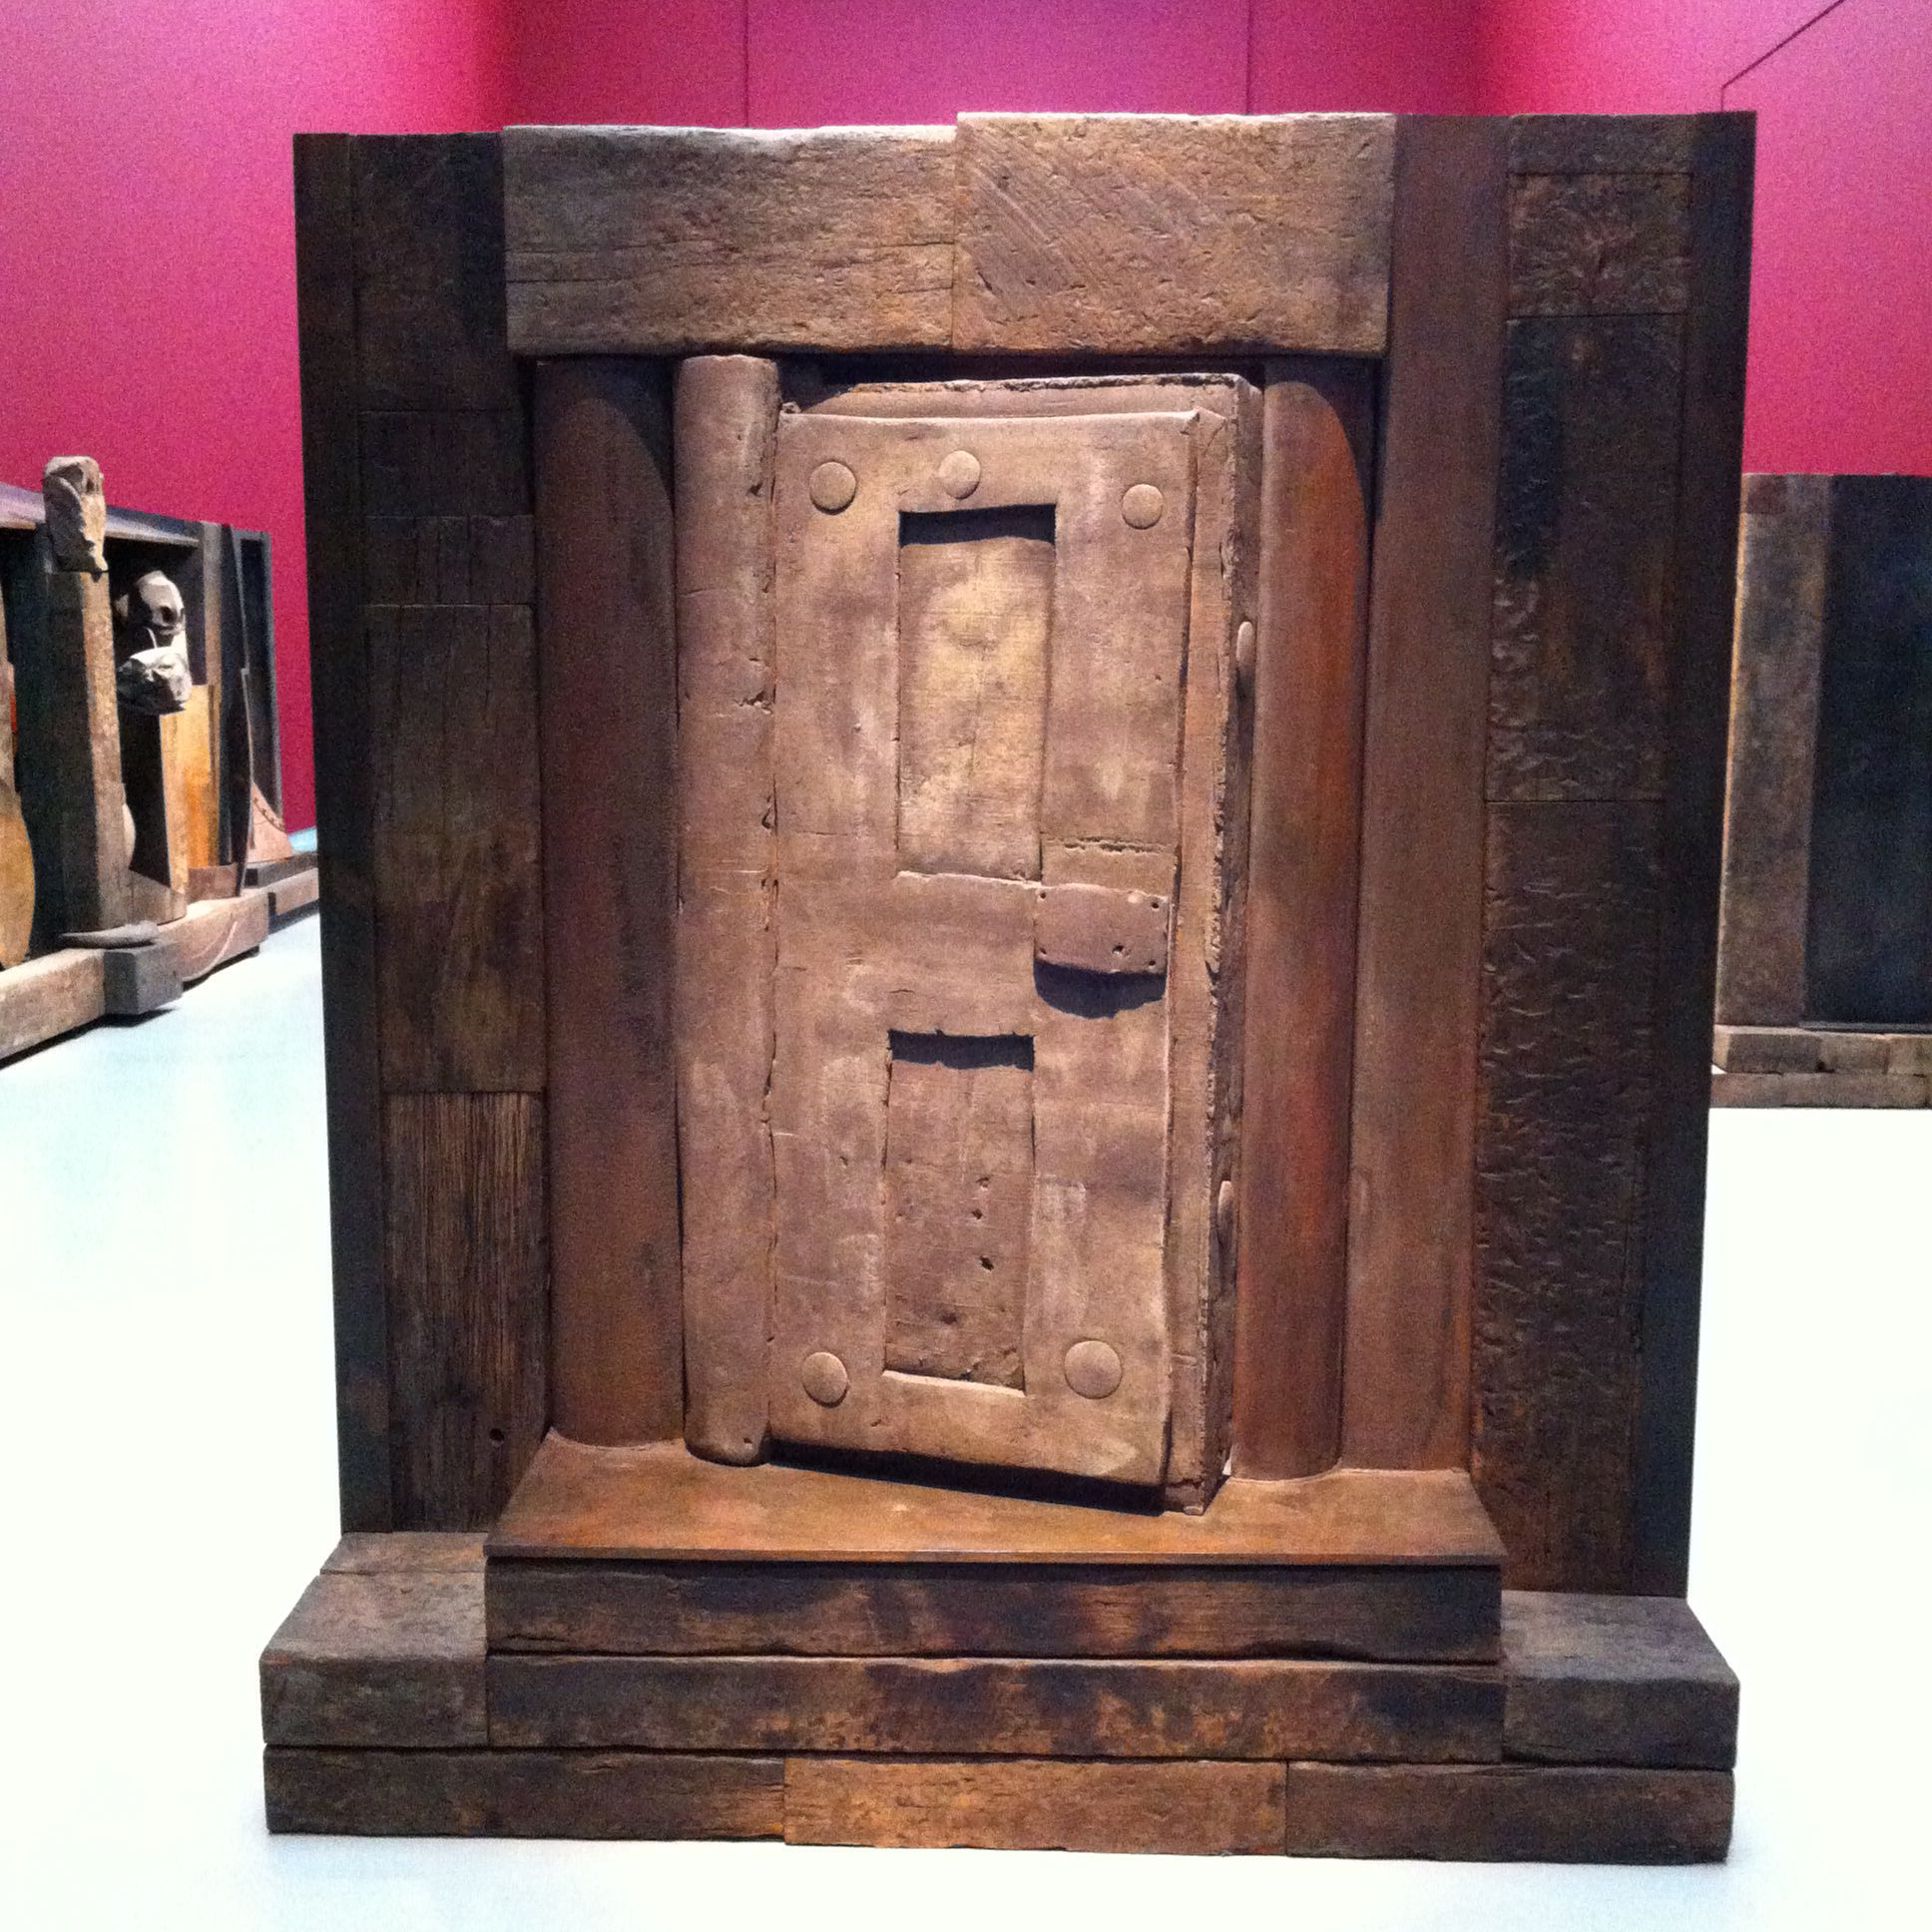 Anthony Caro - the last judgement (the door of death)